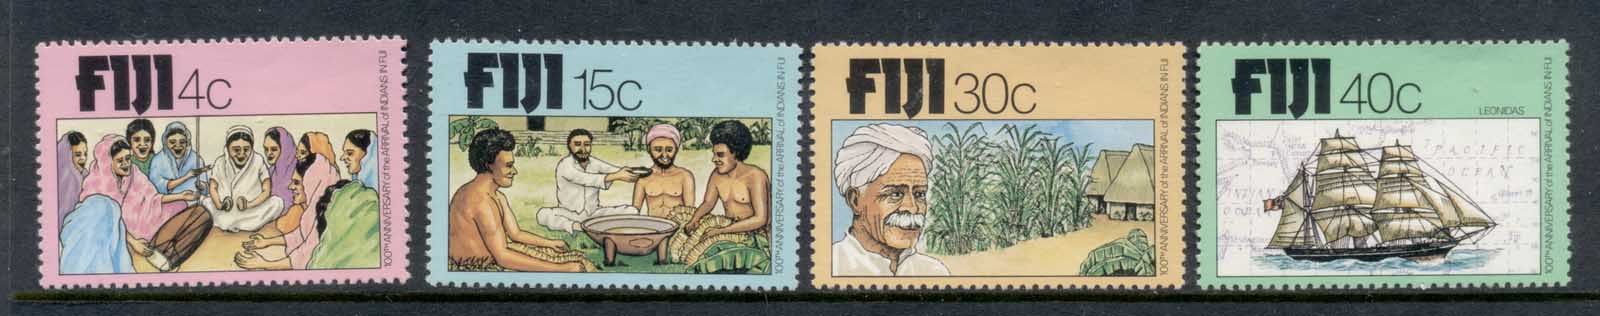 Fiji 1979 Indentured Labourers MUH